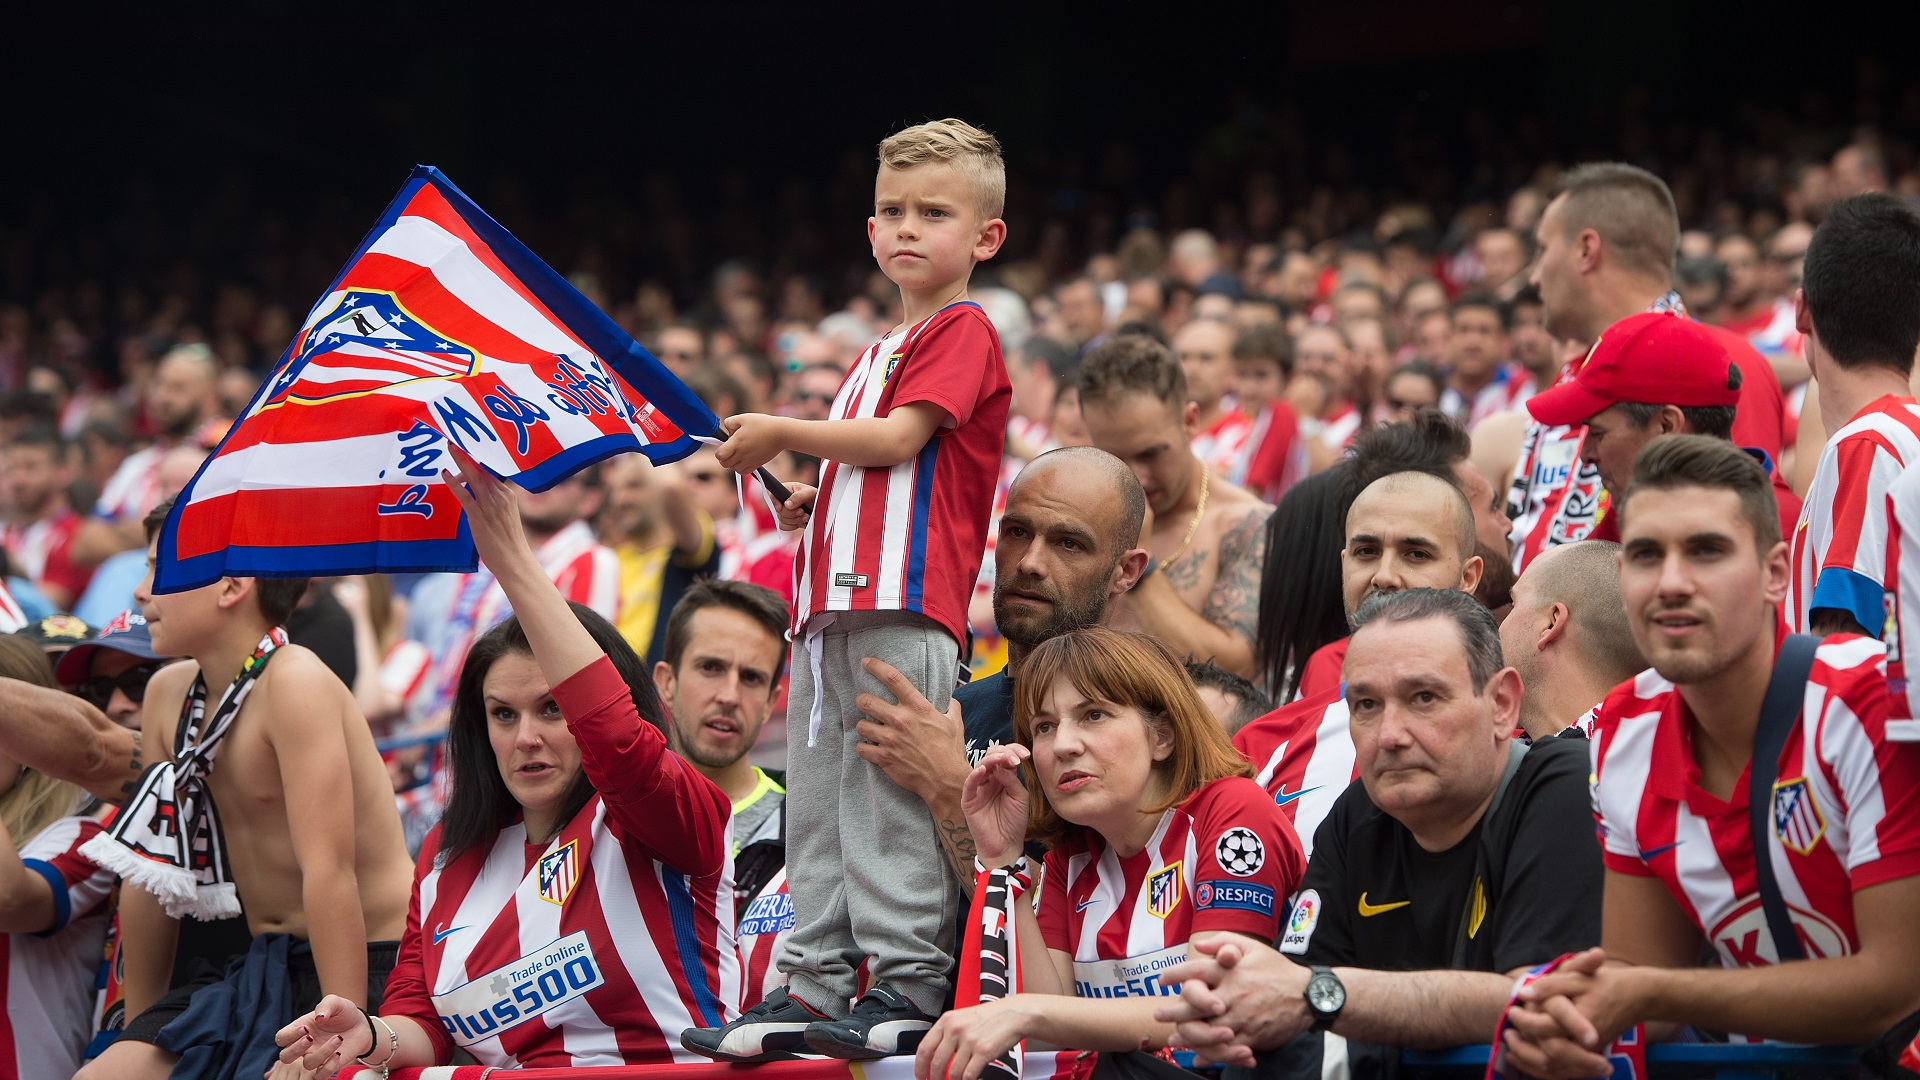 End of an era as torres closes calderon but atletico fans dont last game at vicente calderon atletico madrid athletic bilbao laliga 21052017 voltagebd Image collections